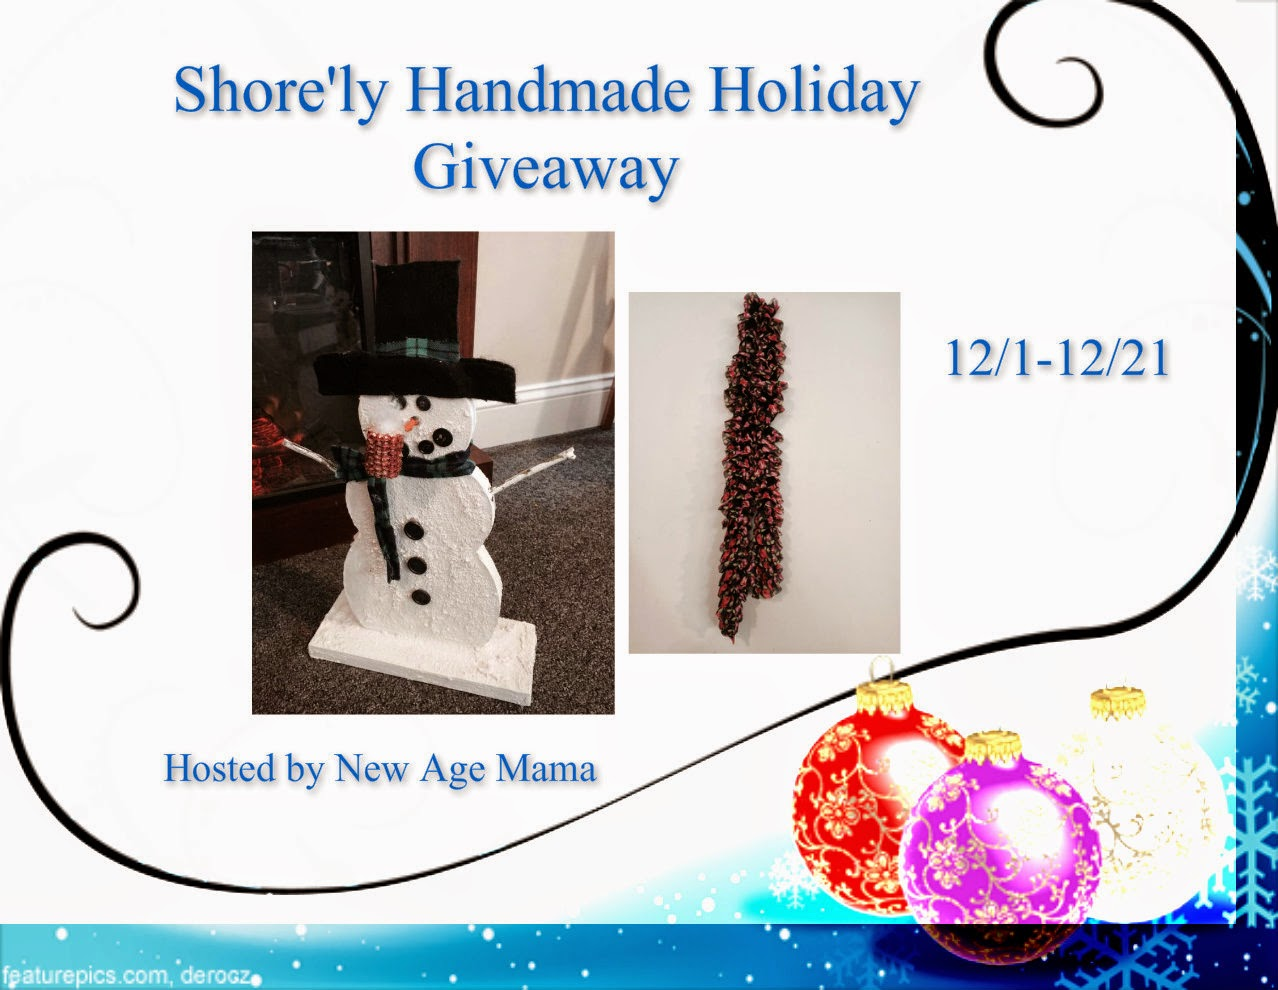 Enter the Shore'ly Handmade Holiday Giveaway. Ends 12/21.